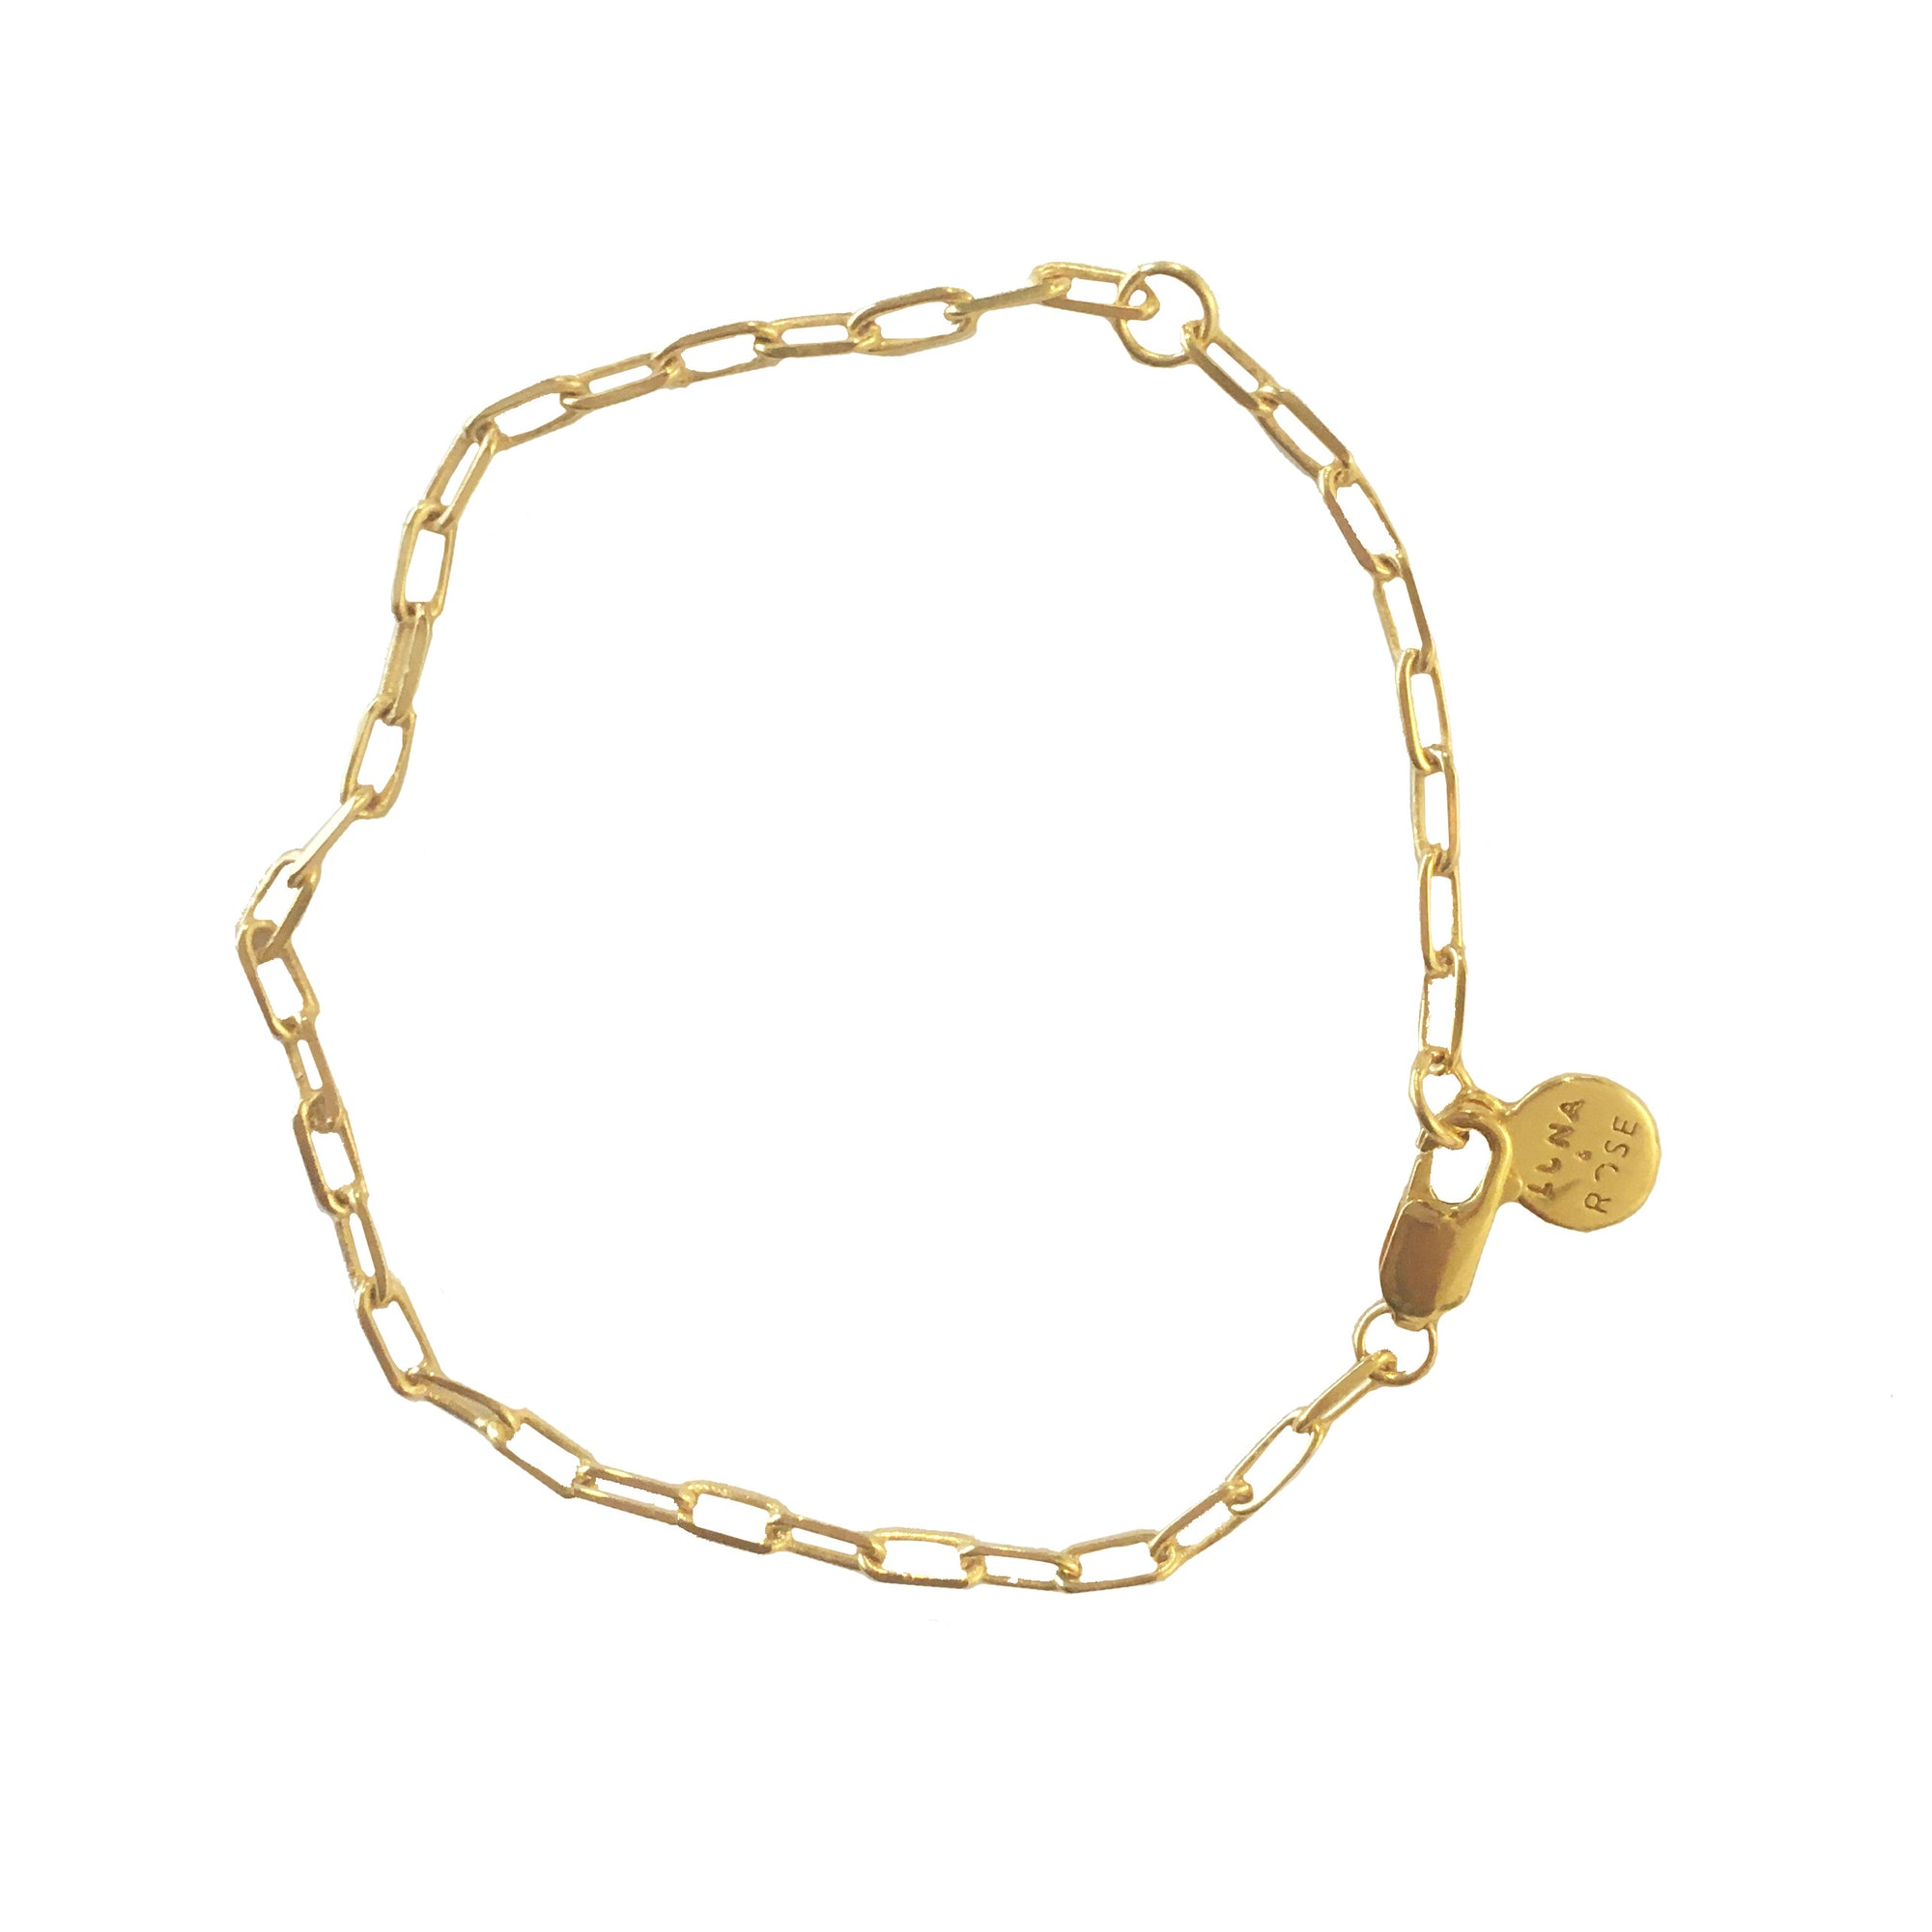 LONG BEACH LINK CHAIN BRACELET - Gold